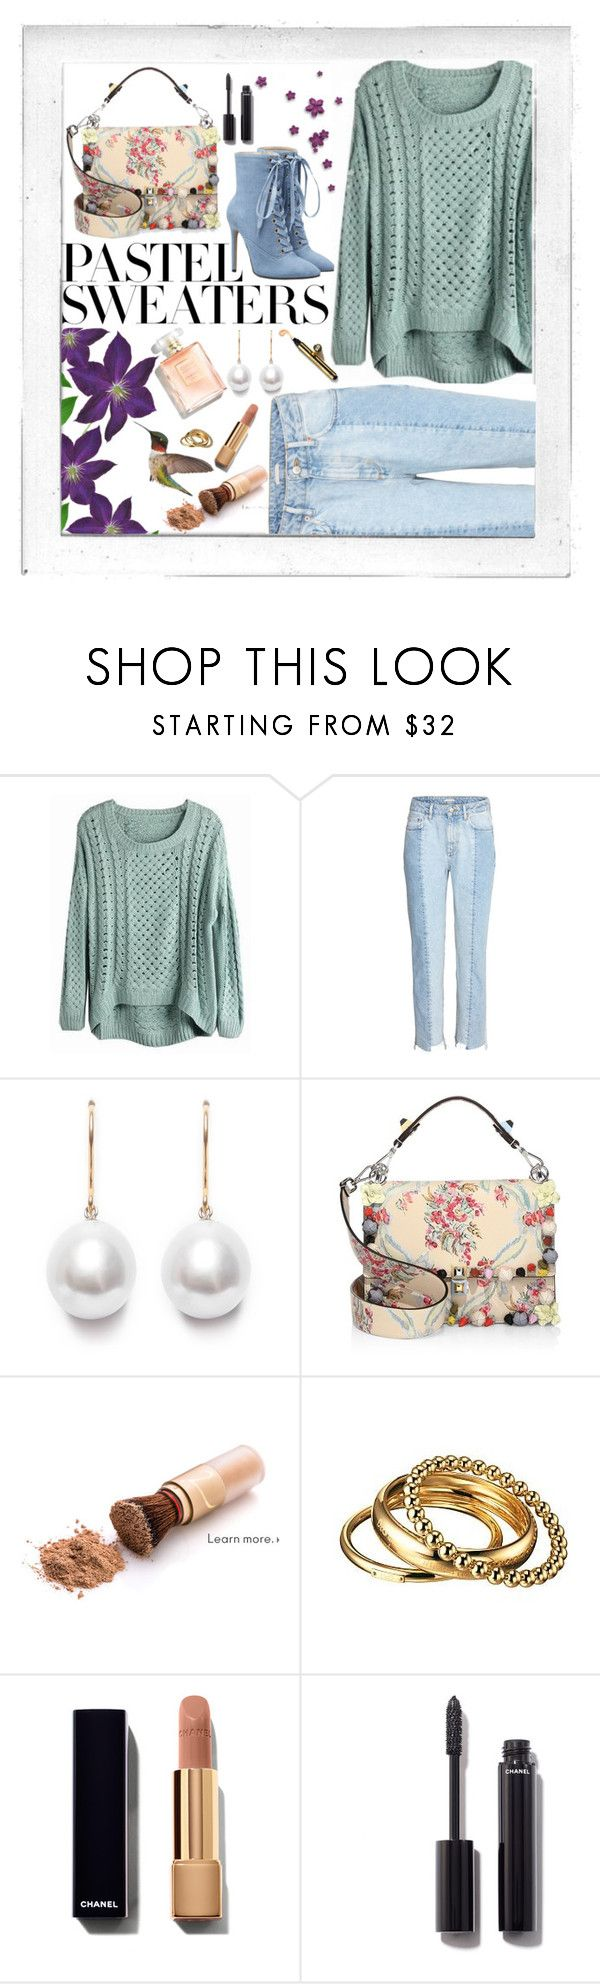 """""""Mint Sweater"""" by carlagoiata ❤ liked on Polyvore featuring Polaroid, Fendi, D&G, Chanel and pastelsweaters"""